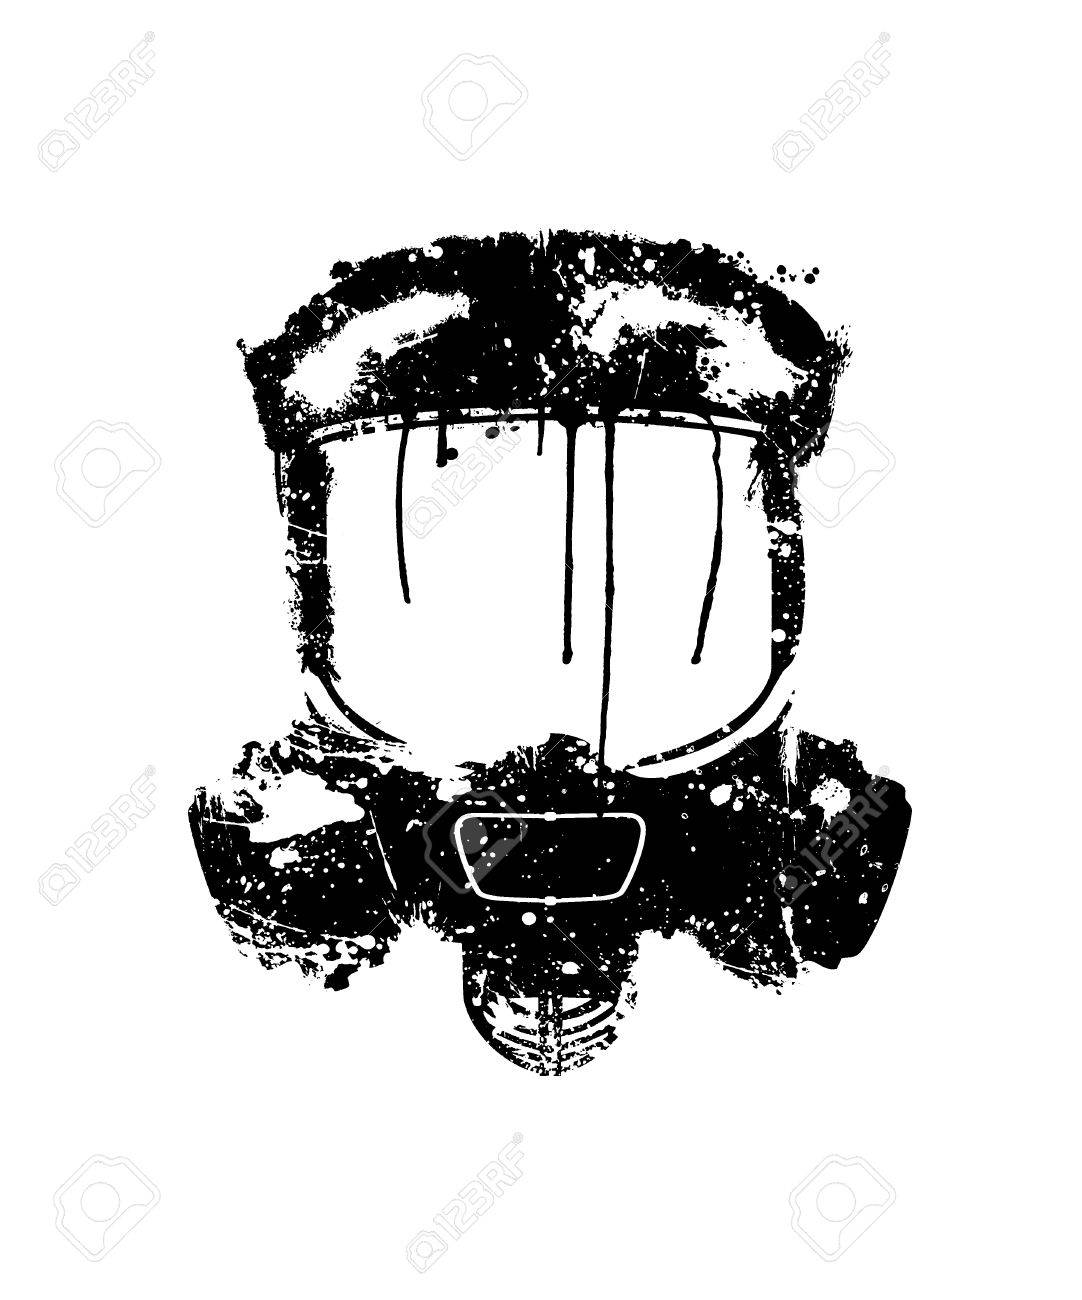 Gas mask painted in black on a white background Stock Photo - 20183737